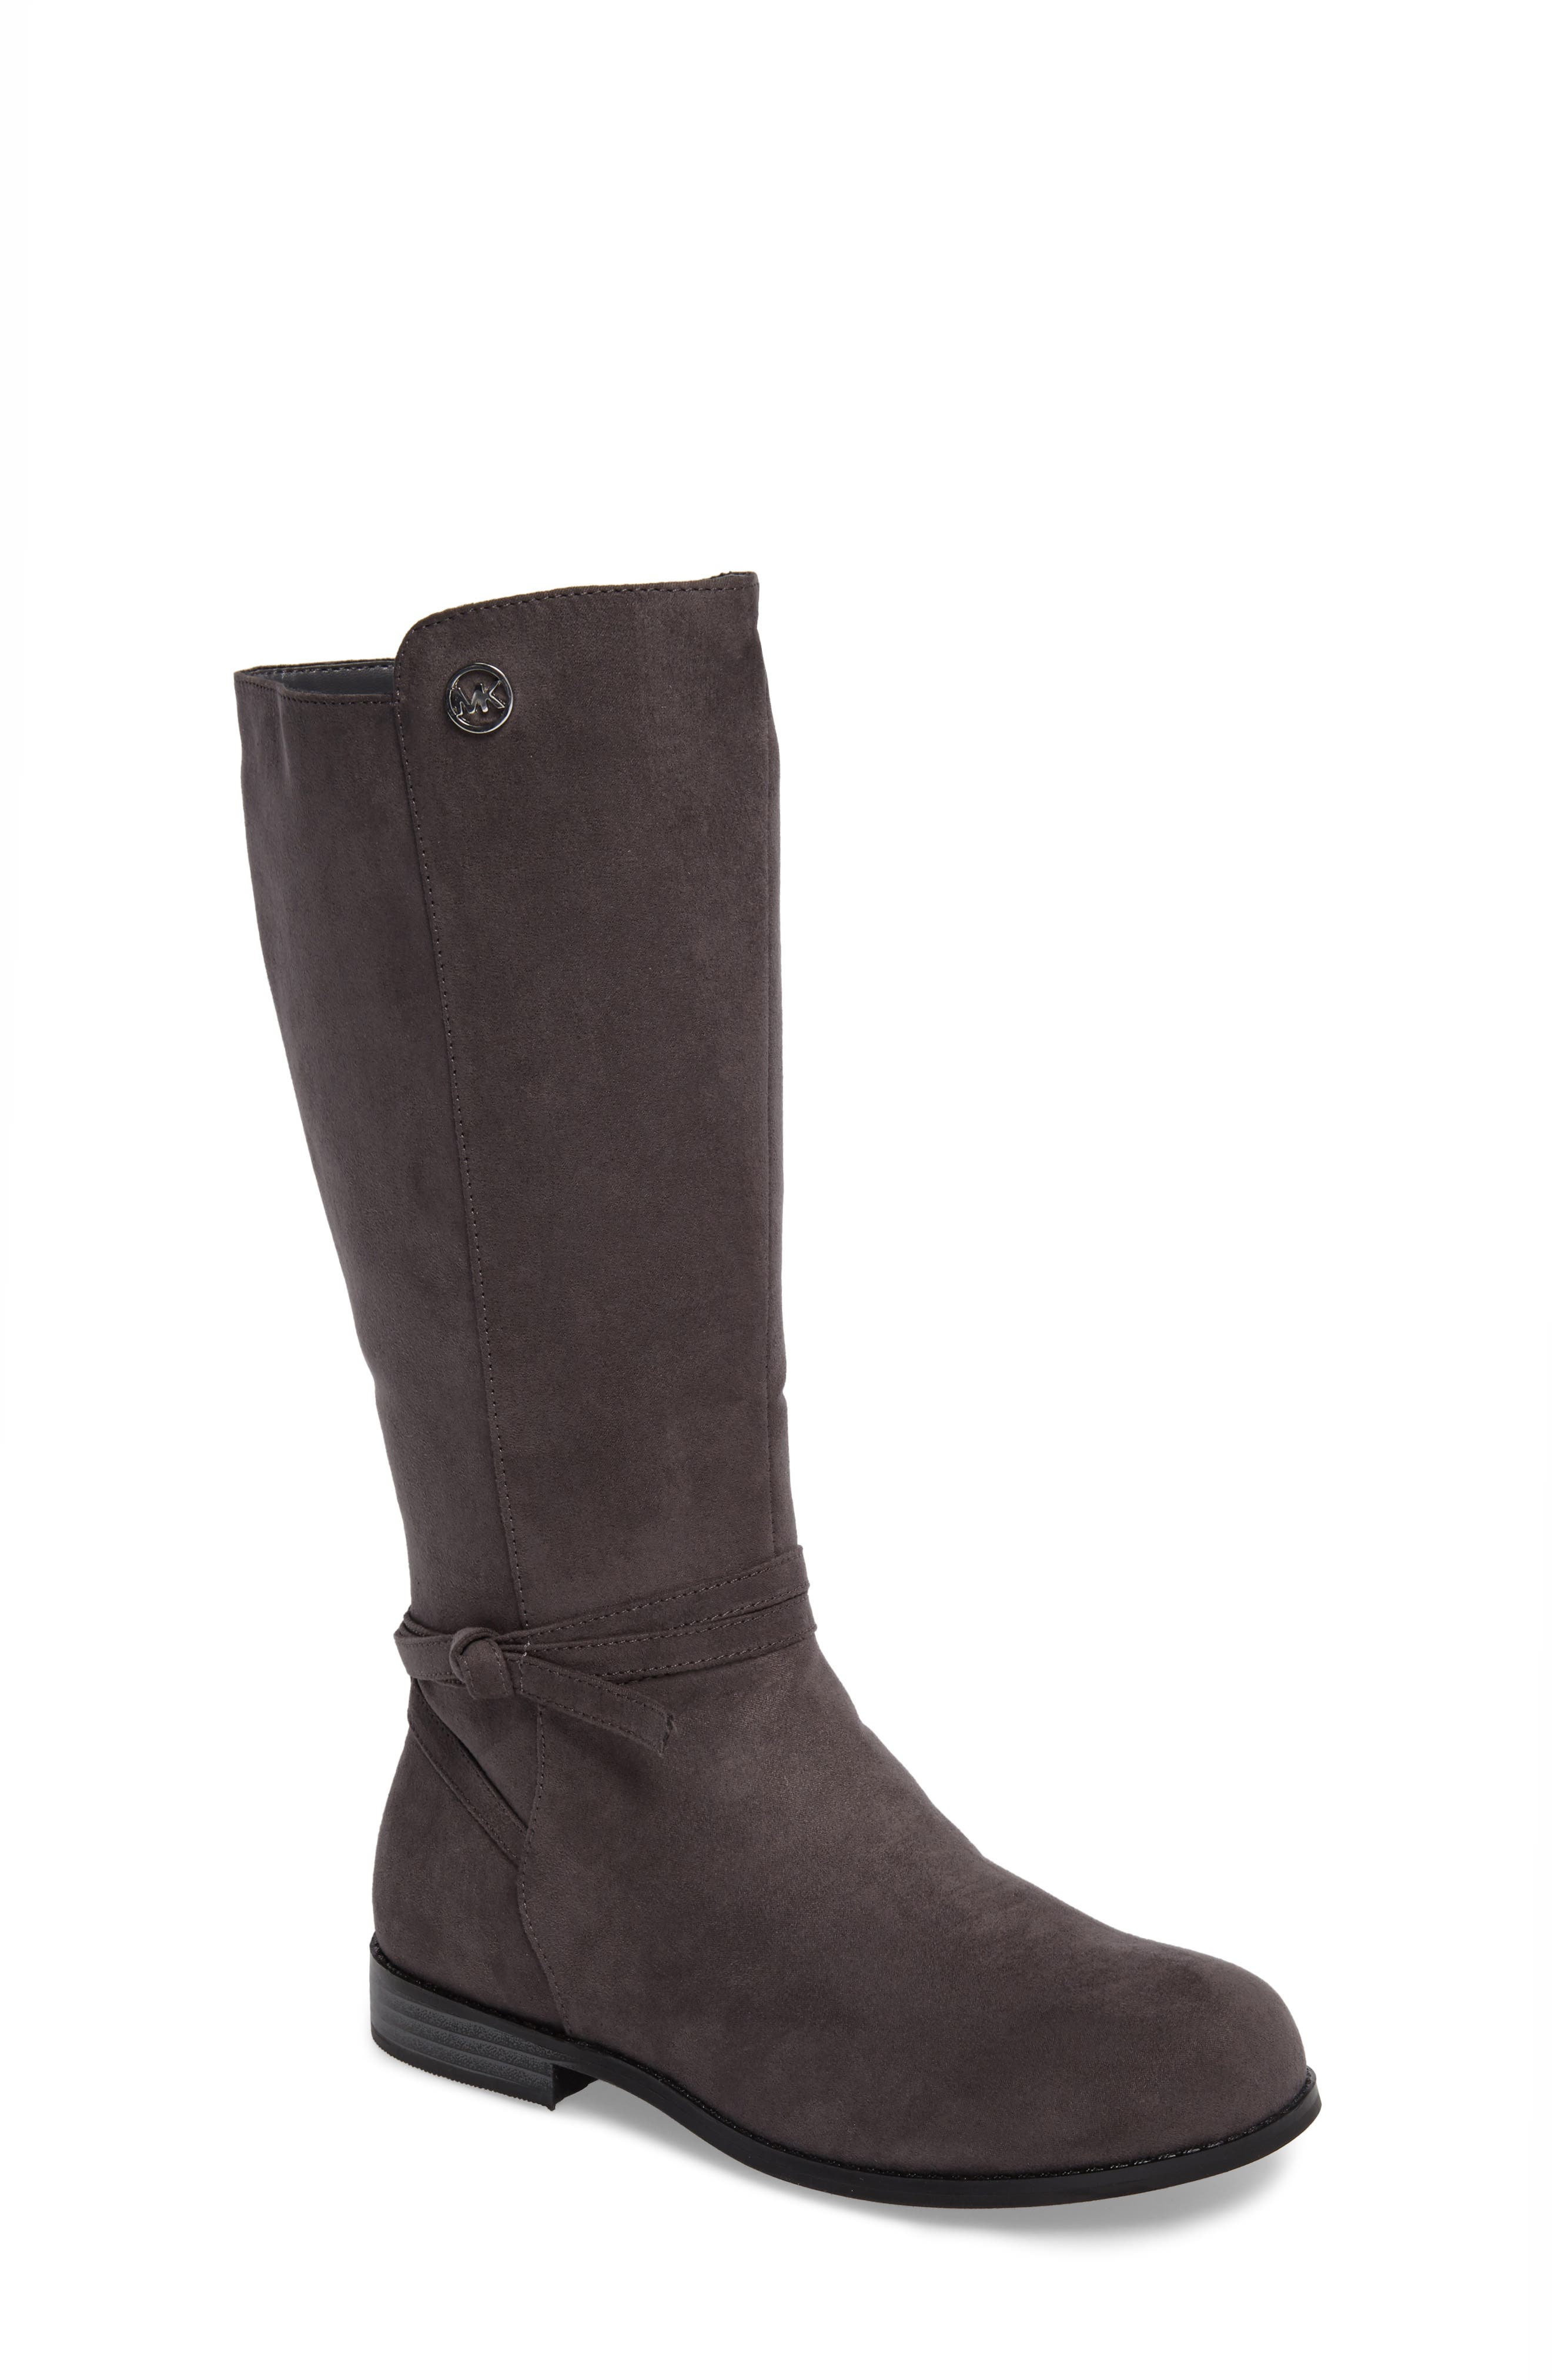 Emma Carter Knotted Boot,                             Main thumbnail 1, color,                             051